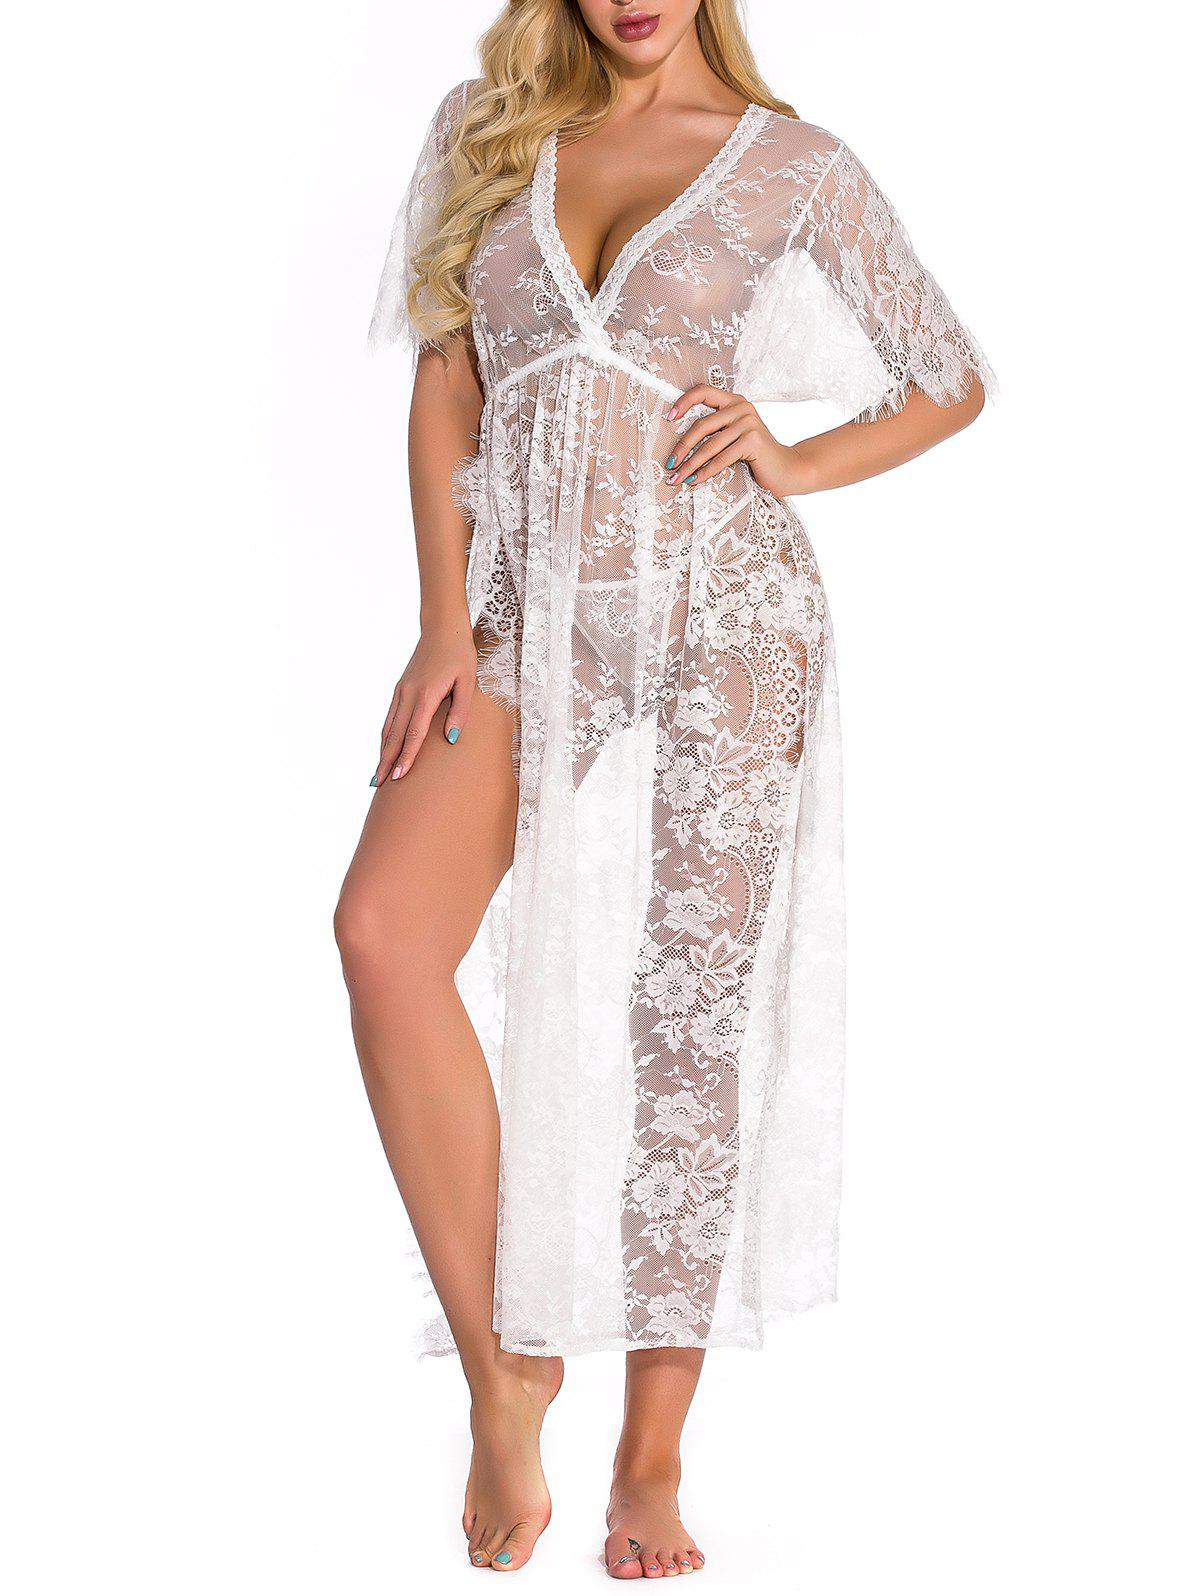 Lace High Slit Lingerie Gown - WHITE L